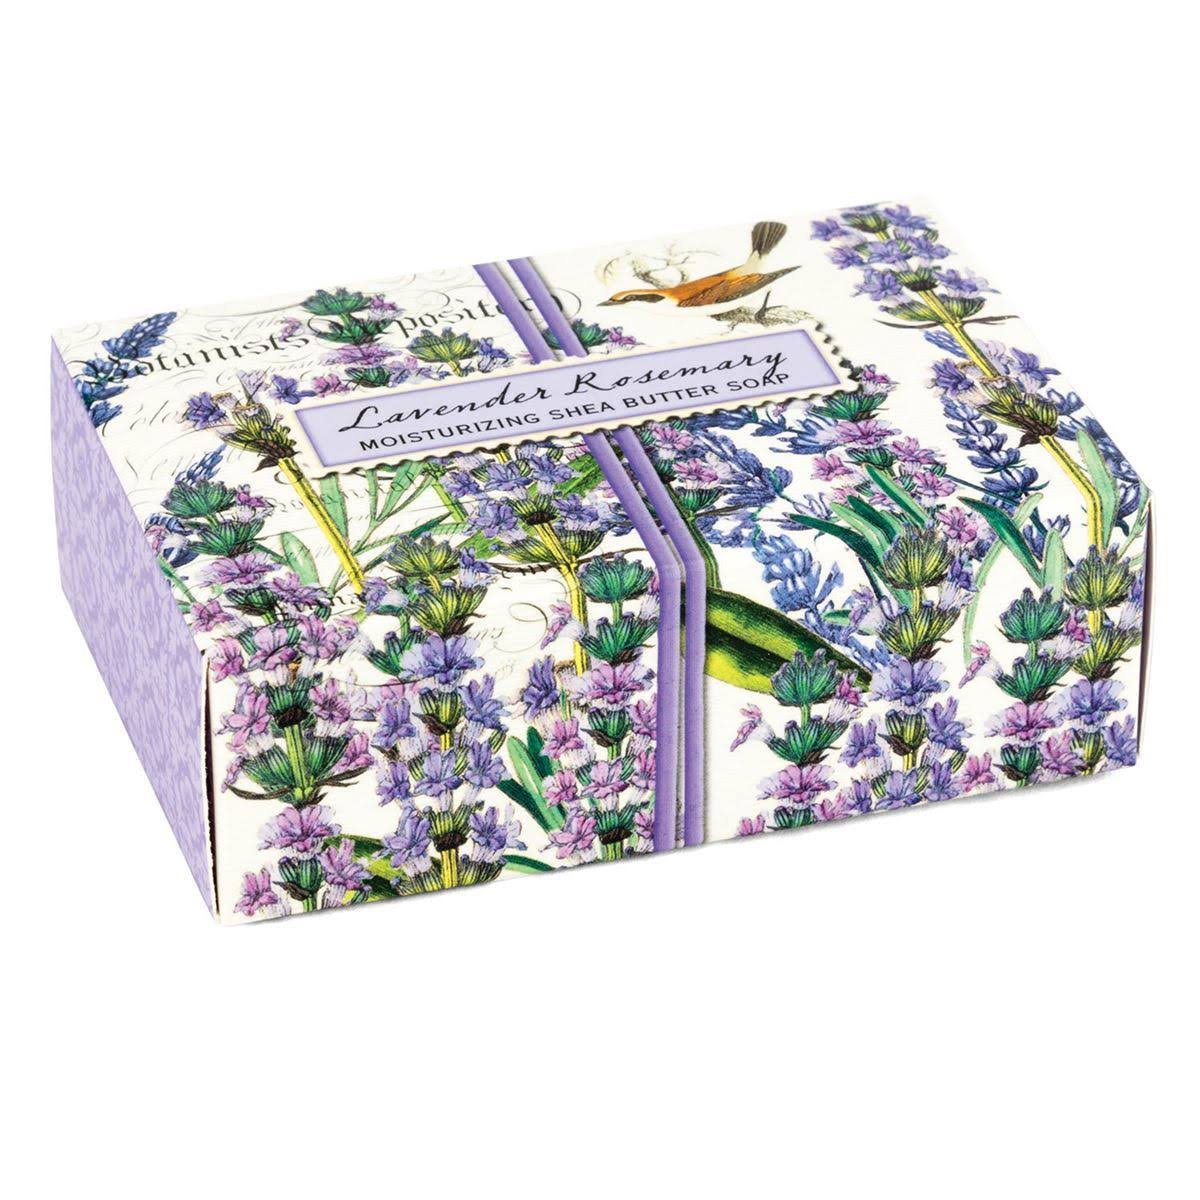 Michel Design Works 4.5oz Boxed Single Soap, Lavender Rosemary